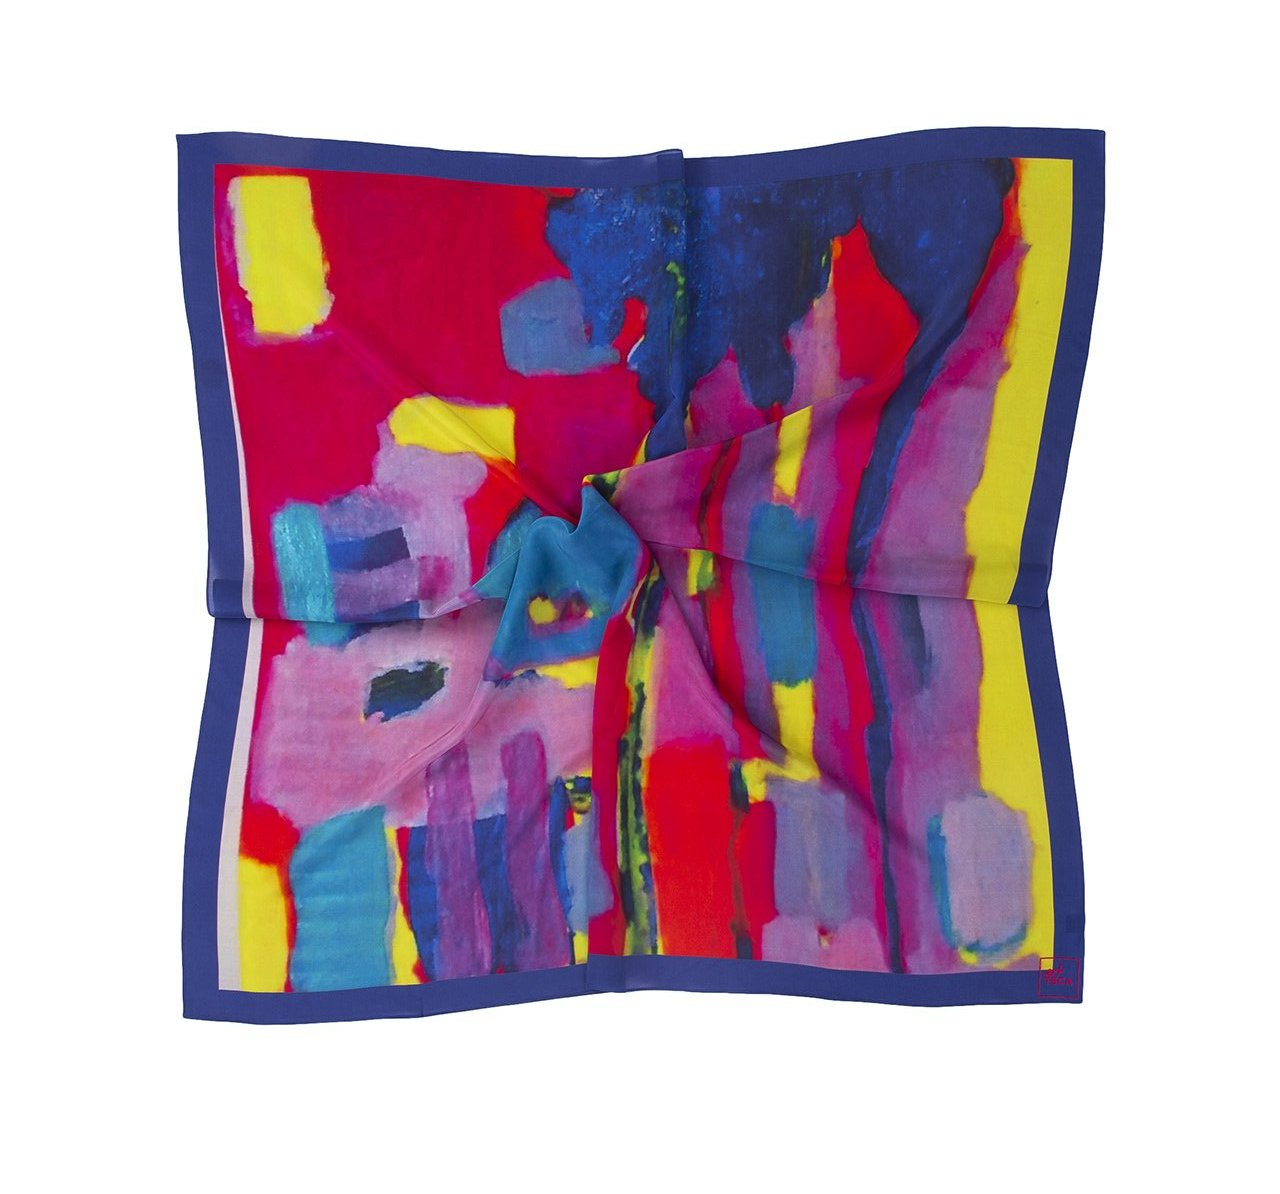 Hue Silk Scarf - Colorful Sunrise Print Scarves - artTECA